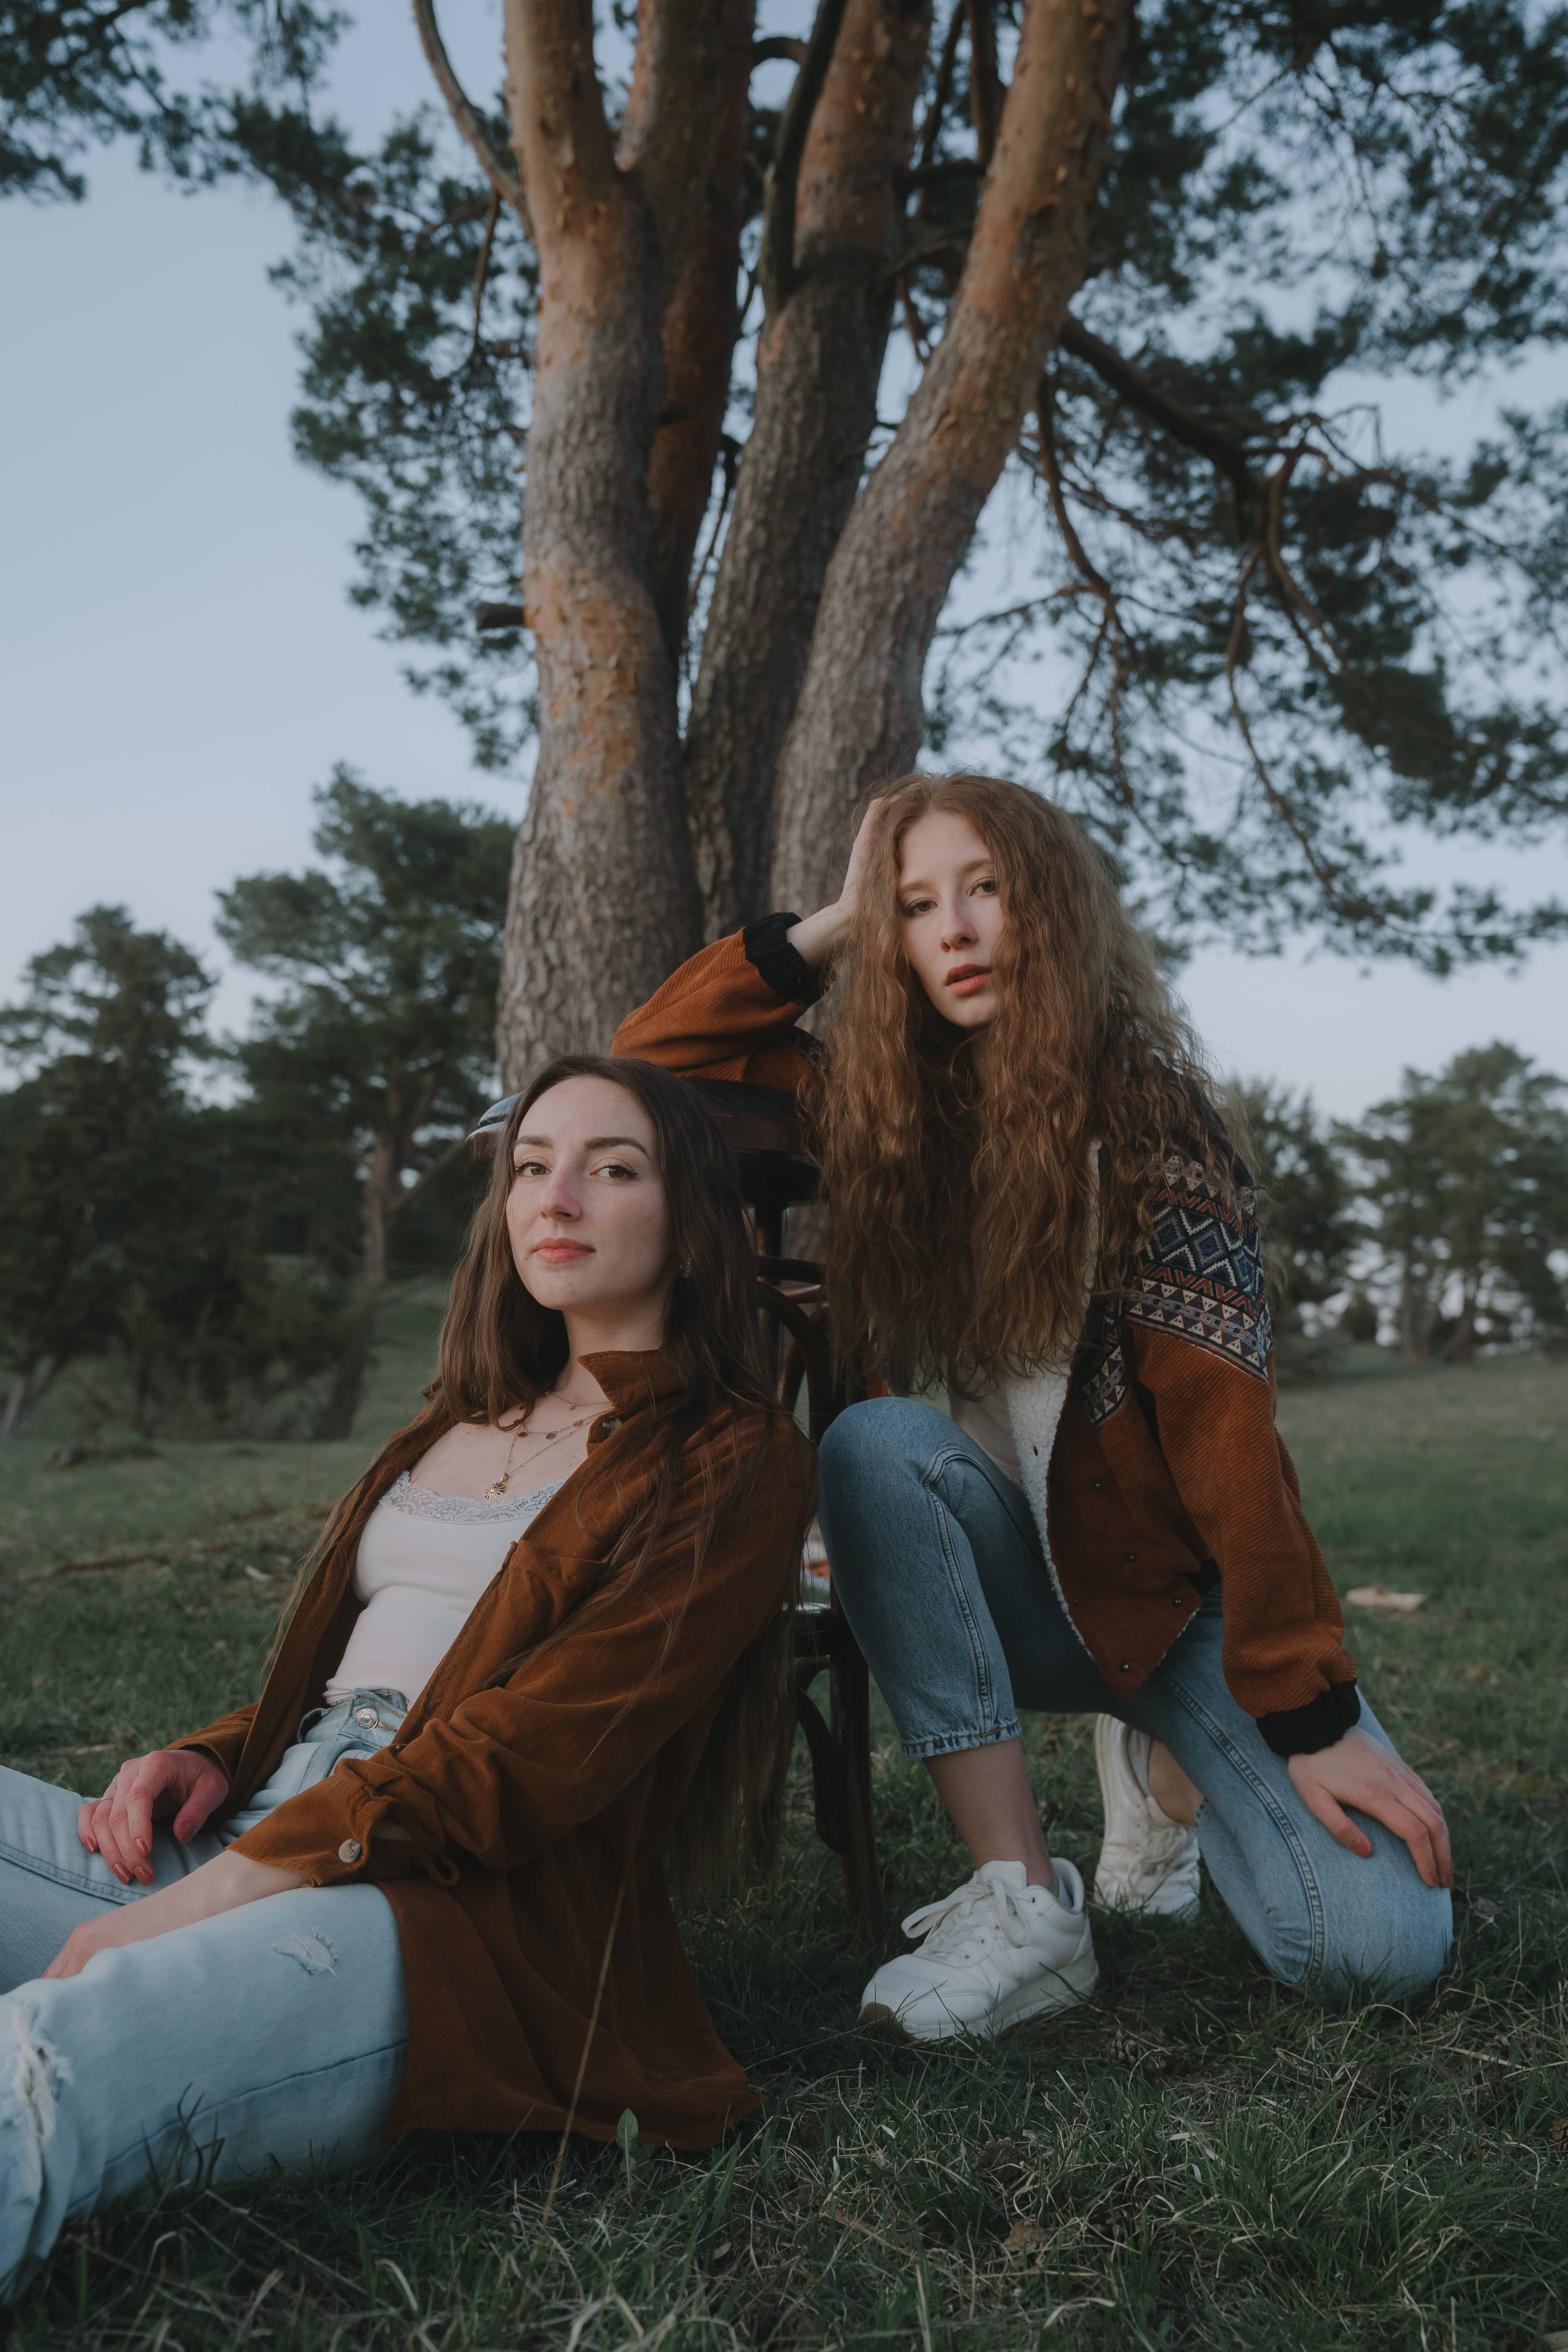 two girls fashionably dressed leaning against chair in nature